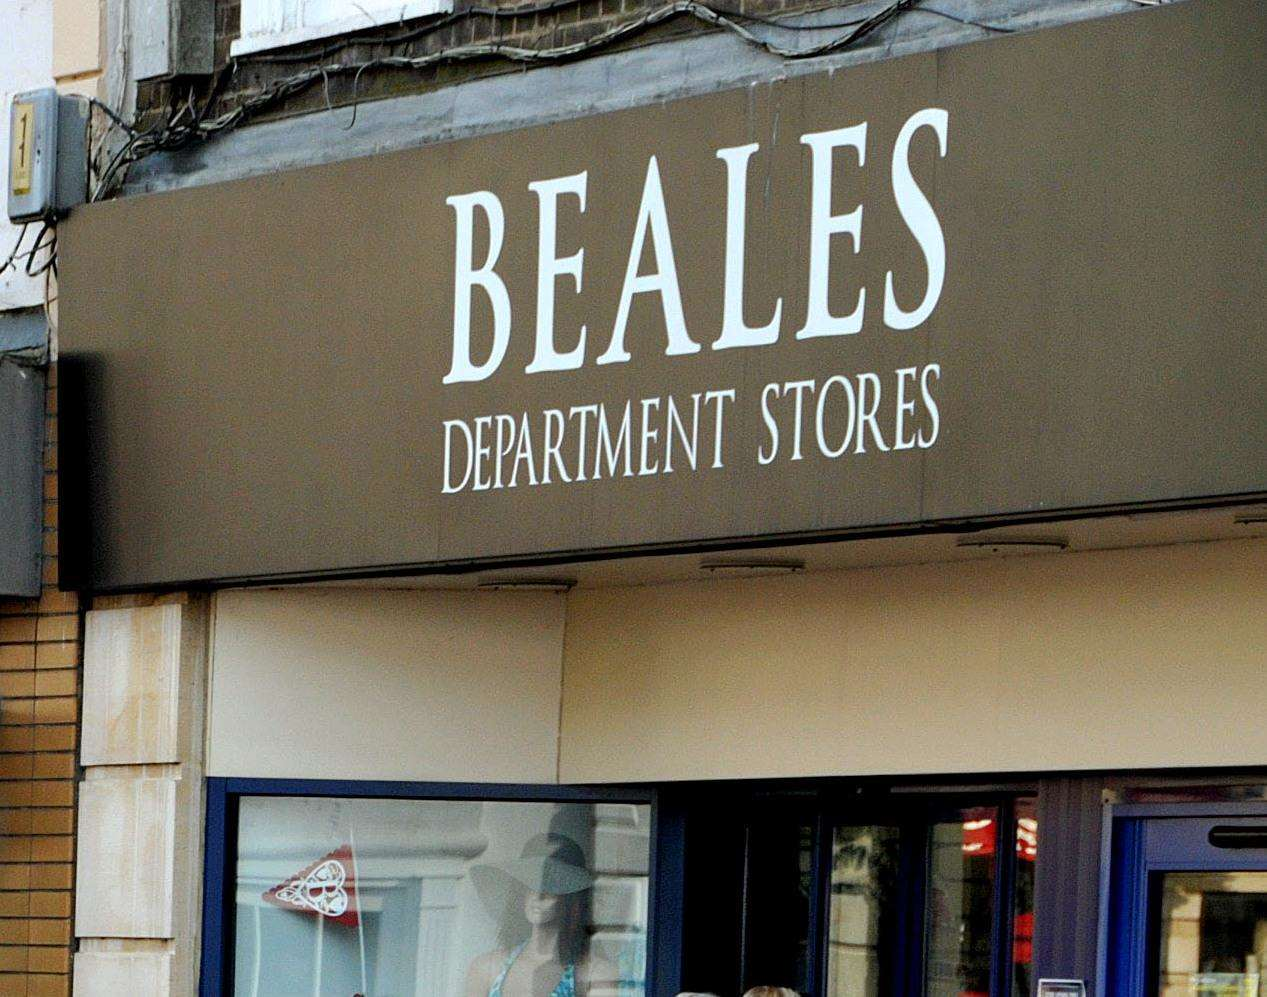 Beales Department Store, Market Place, Spalding. Photo by Tim Wilson. Photo: SG160713-233TW. (2155644)